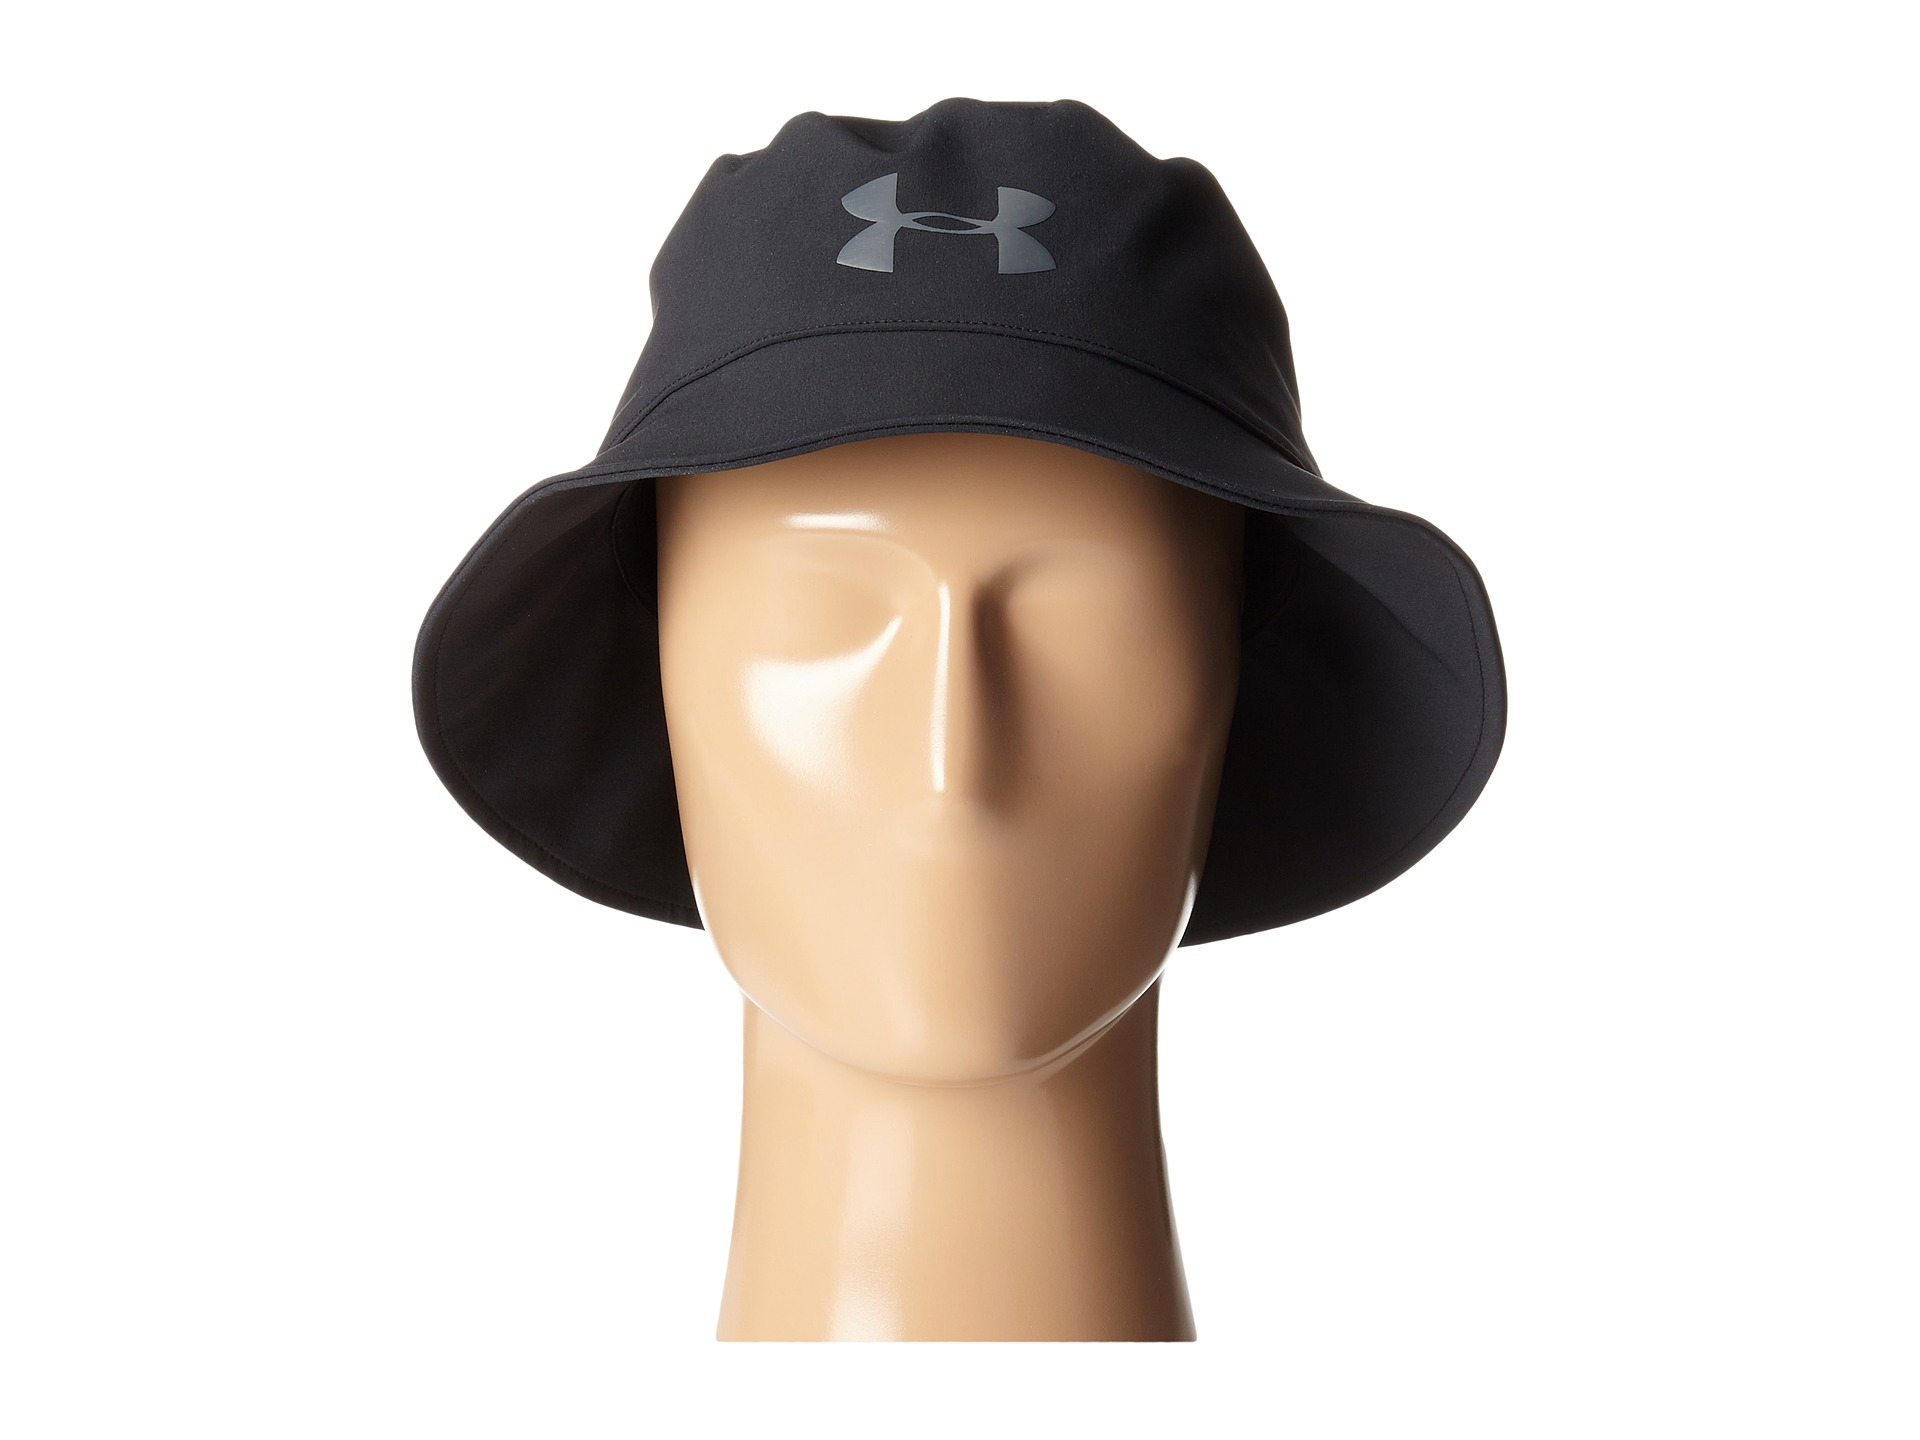 Lyst - Under Armour Ua Elements Bucket Hat in Gray for Men 6cf71f27b0a